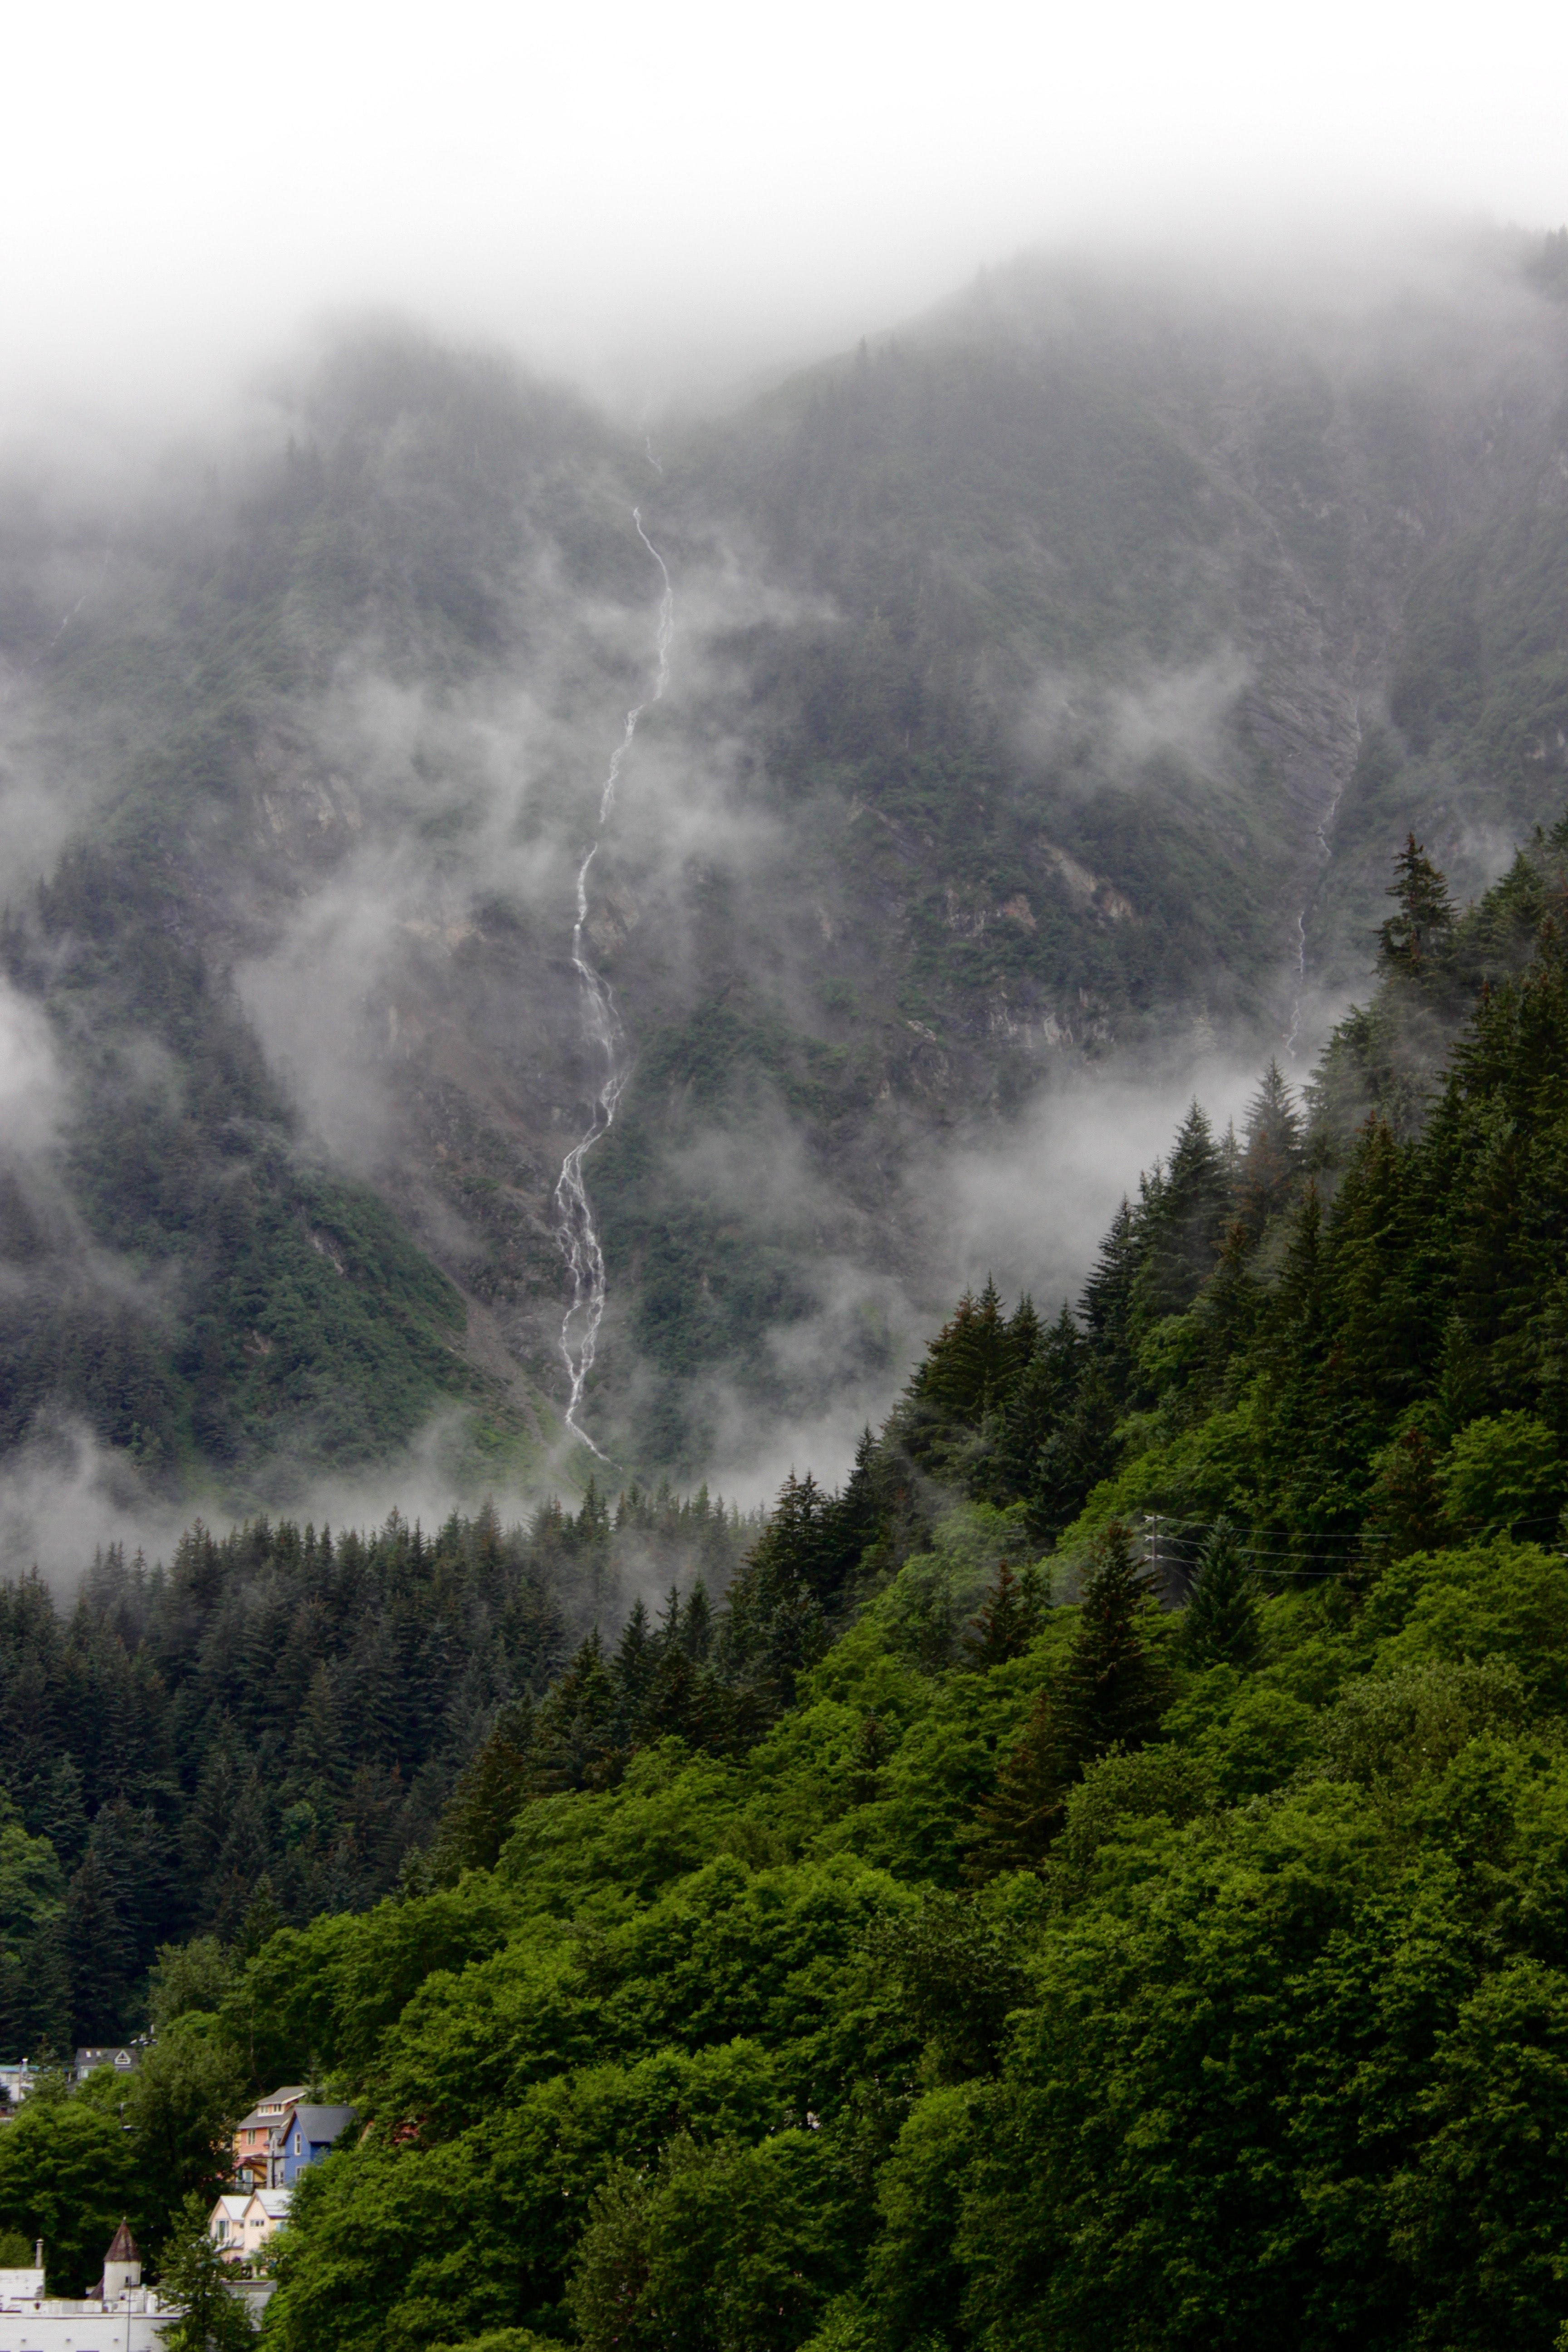 A narrow waterfall pouring down a tall mist-shrouded mountain in Alaska